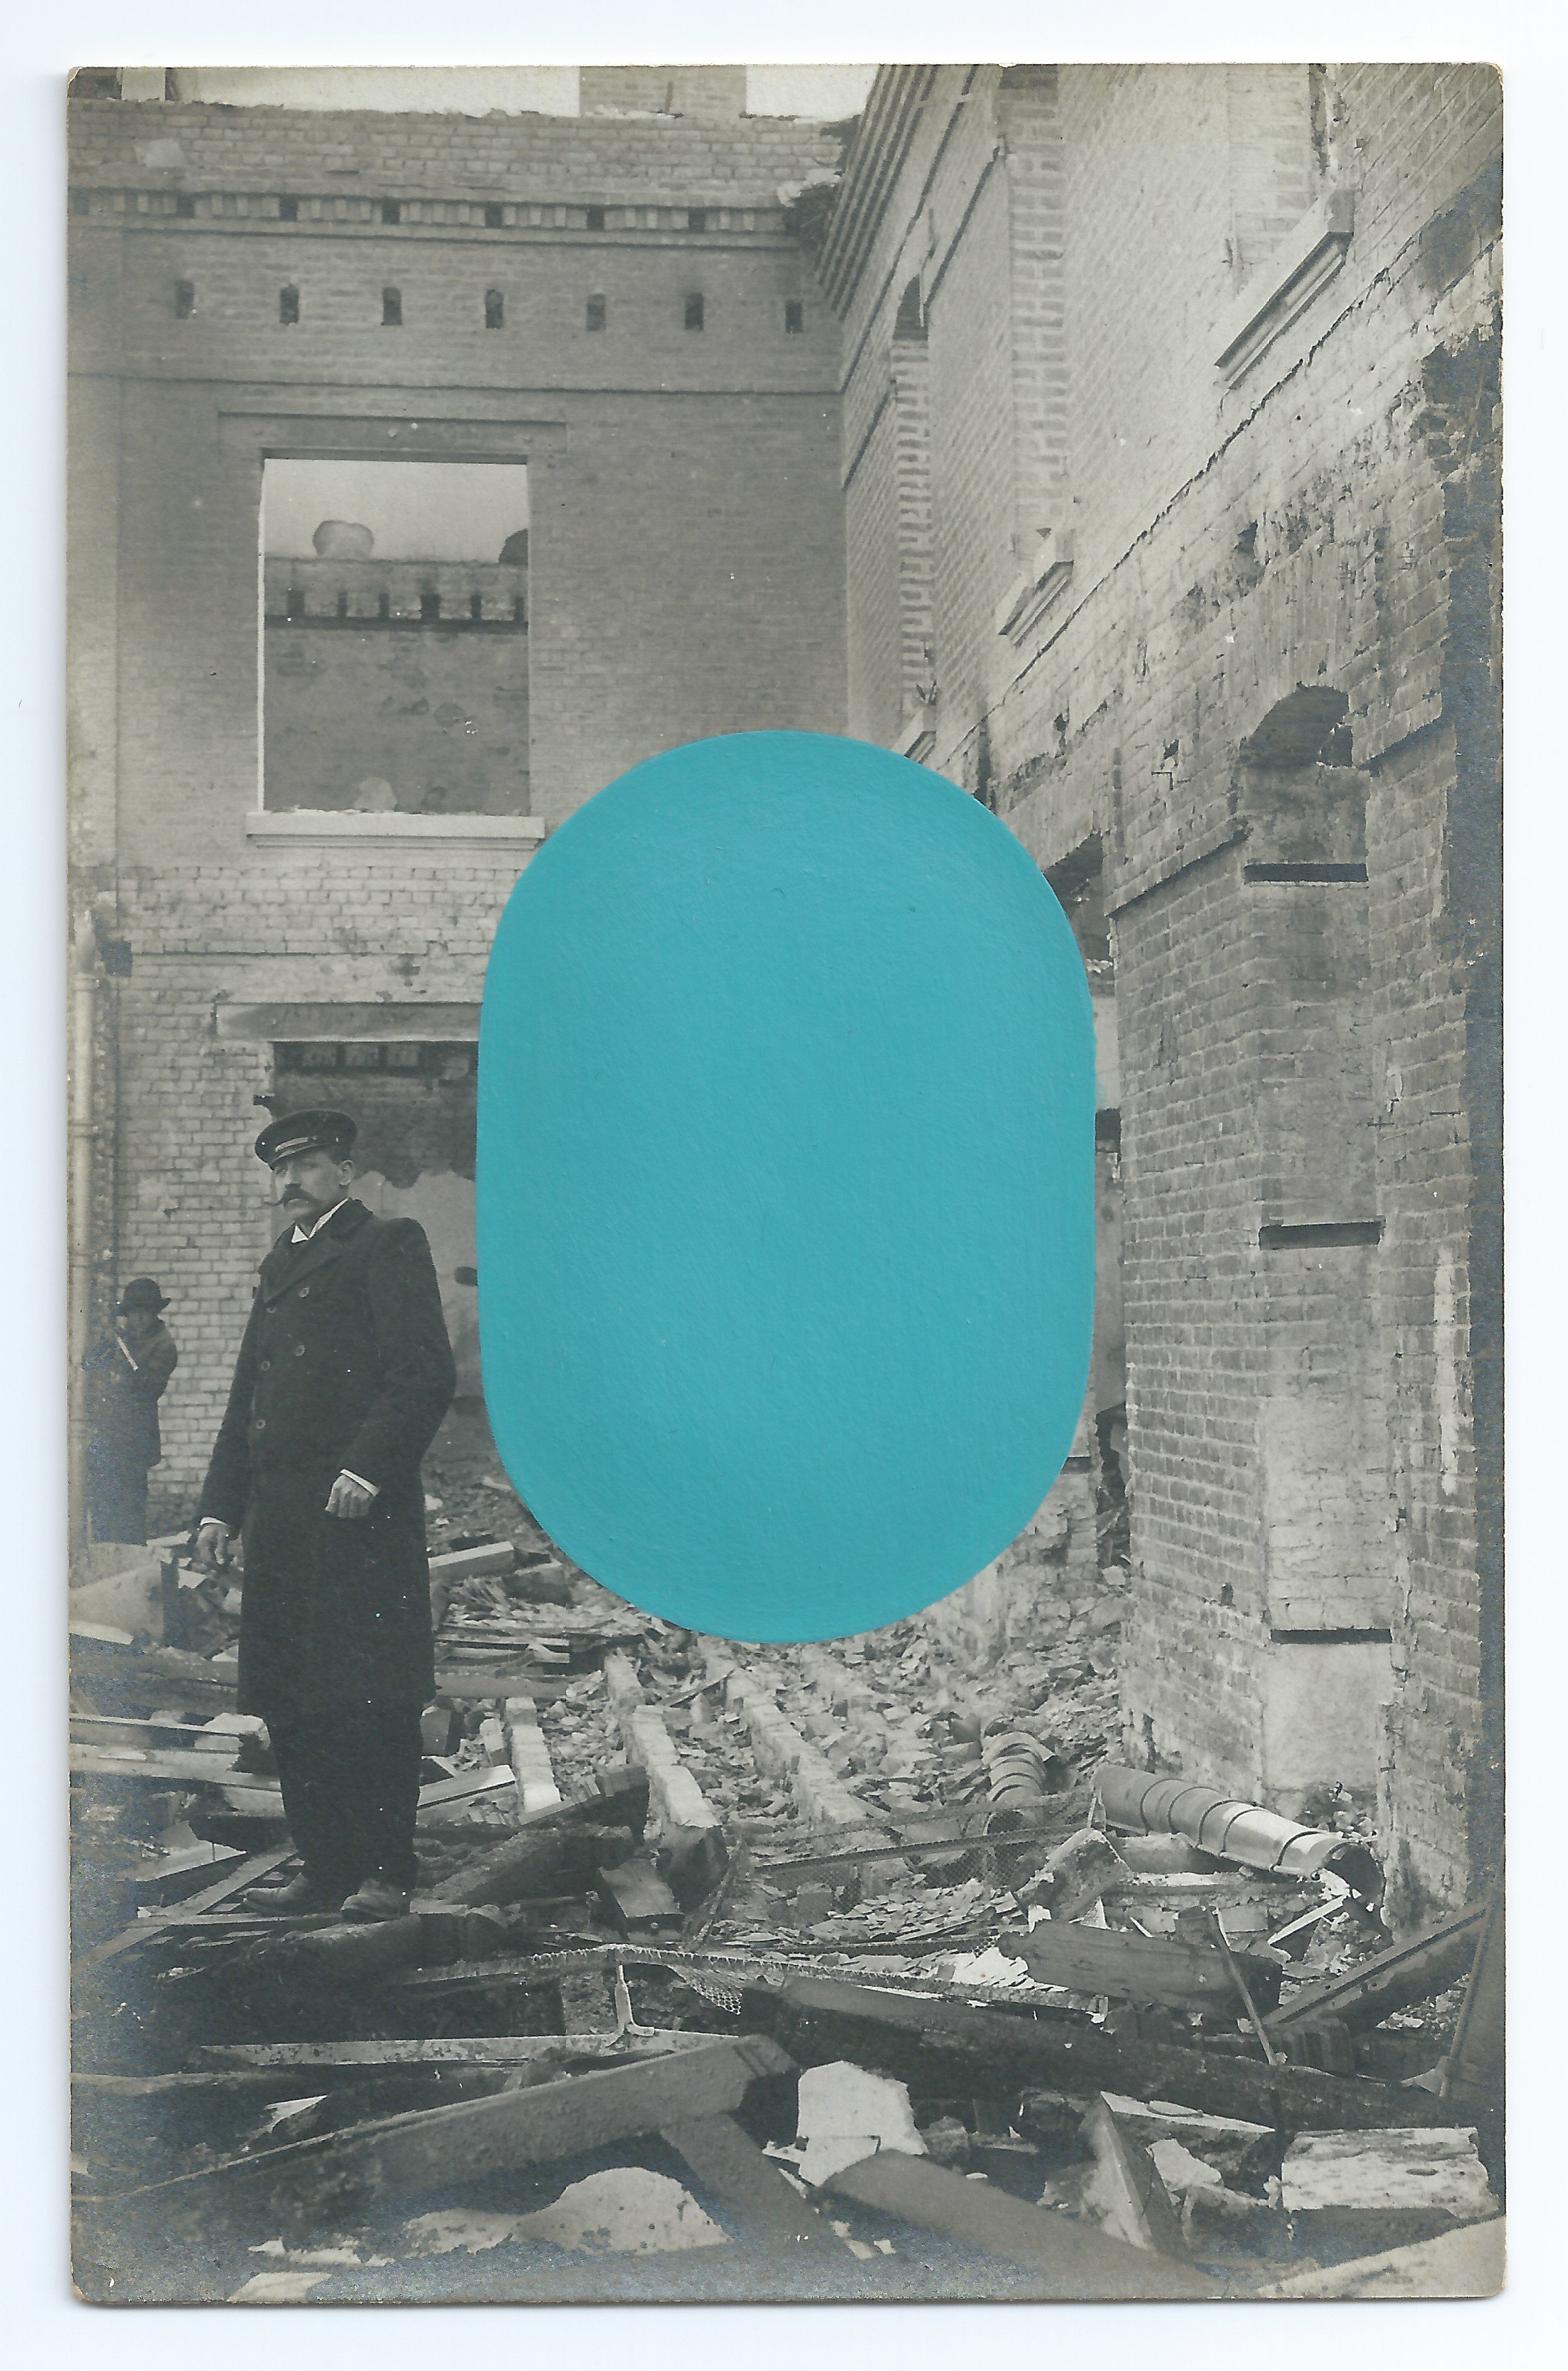 Untitled (Interiors and Ruins), acrylic on antique photographic postcard, 5.5 x 3.5 inches, 2018